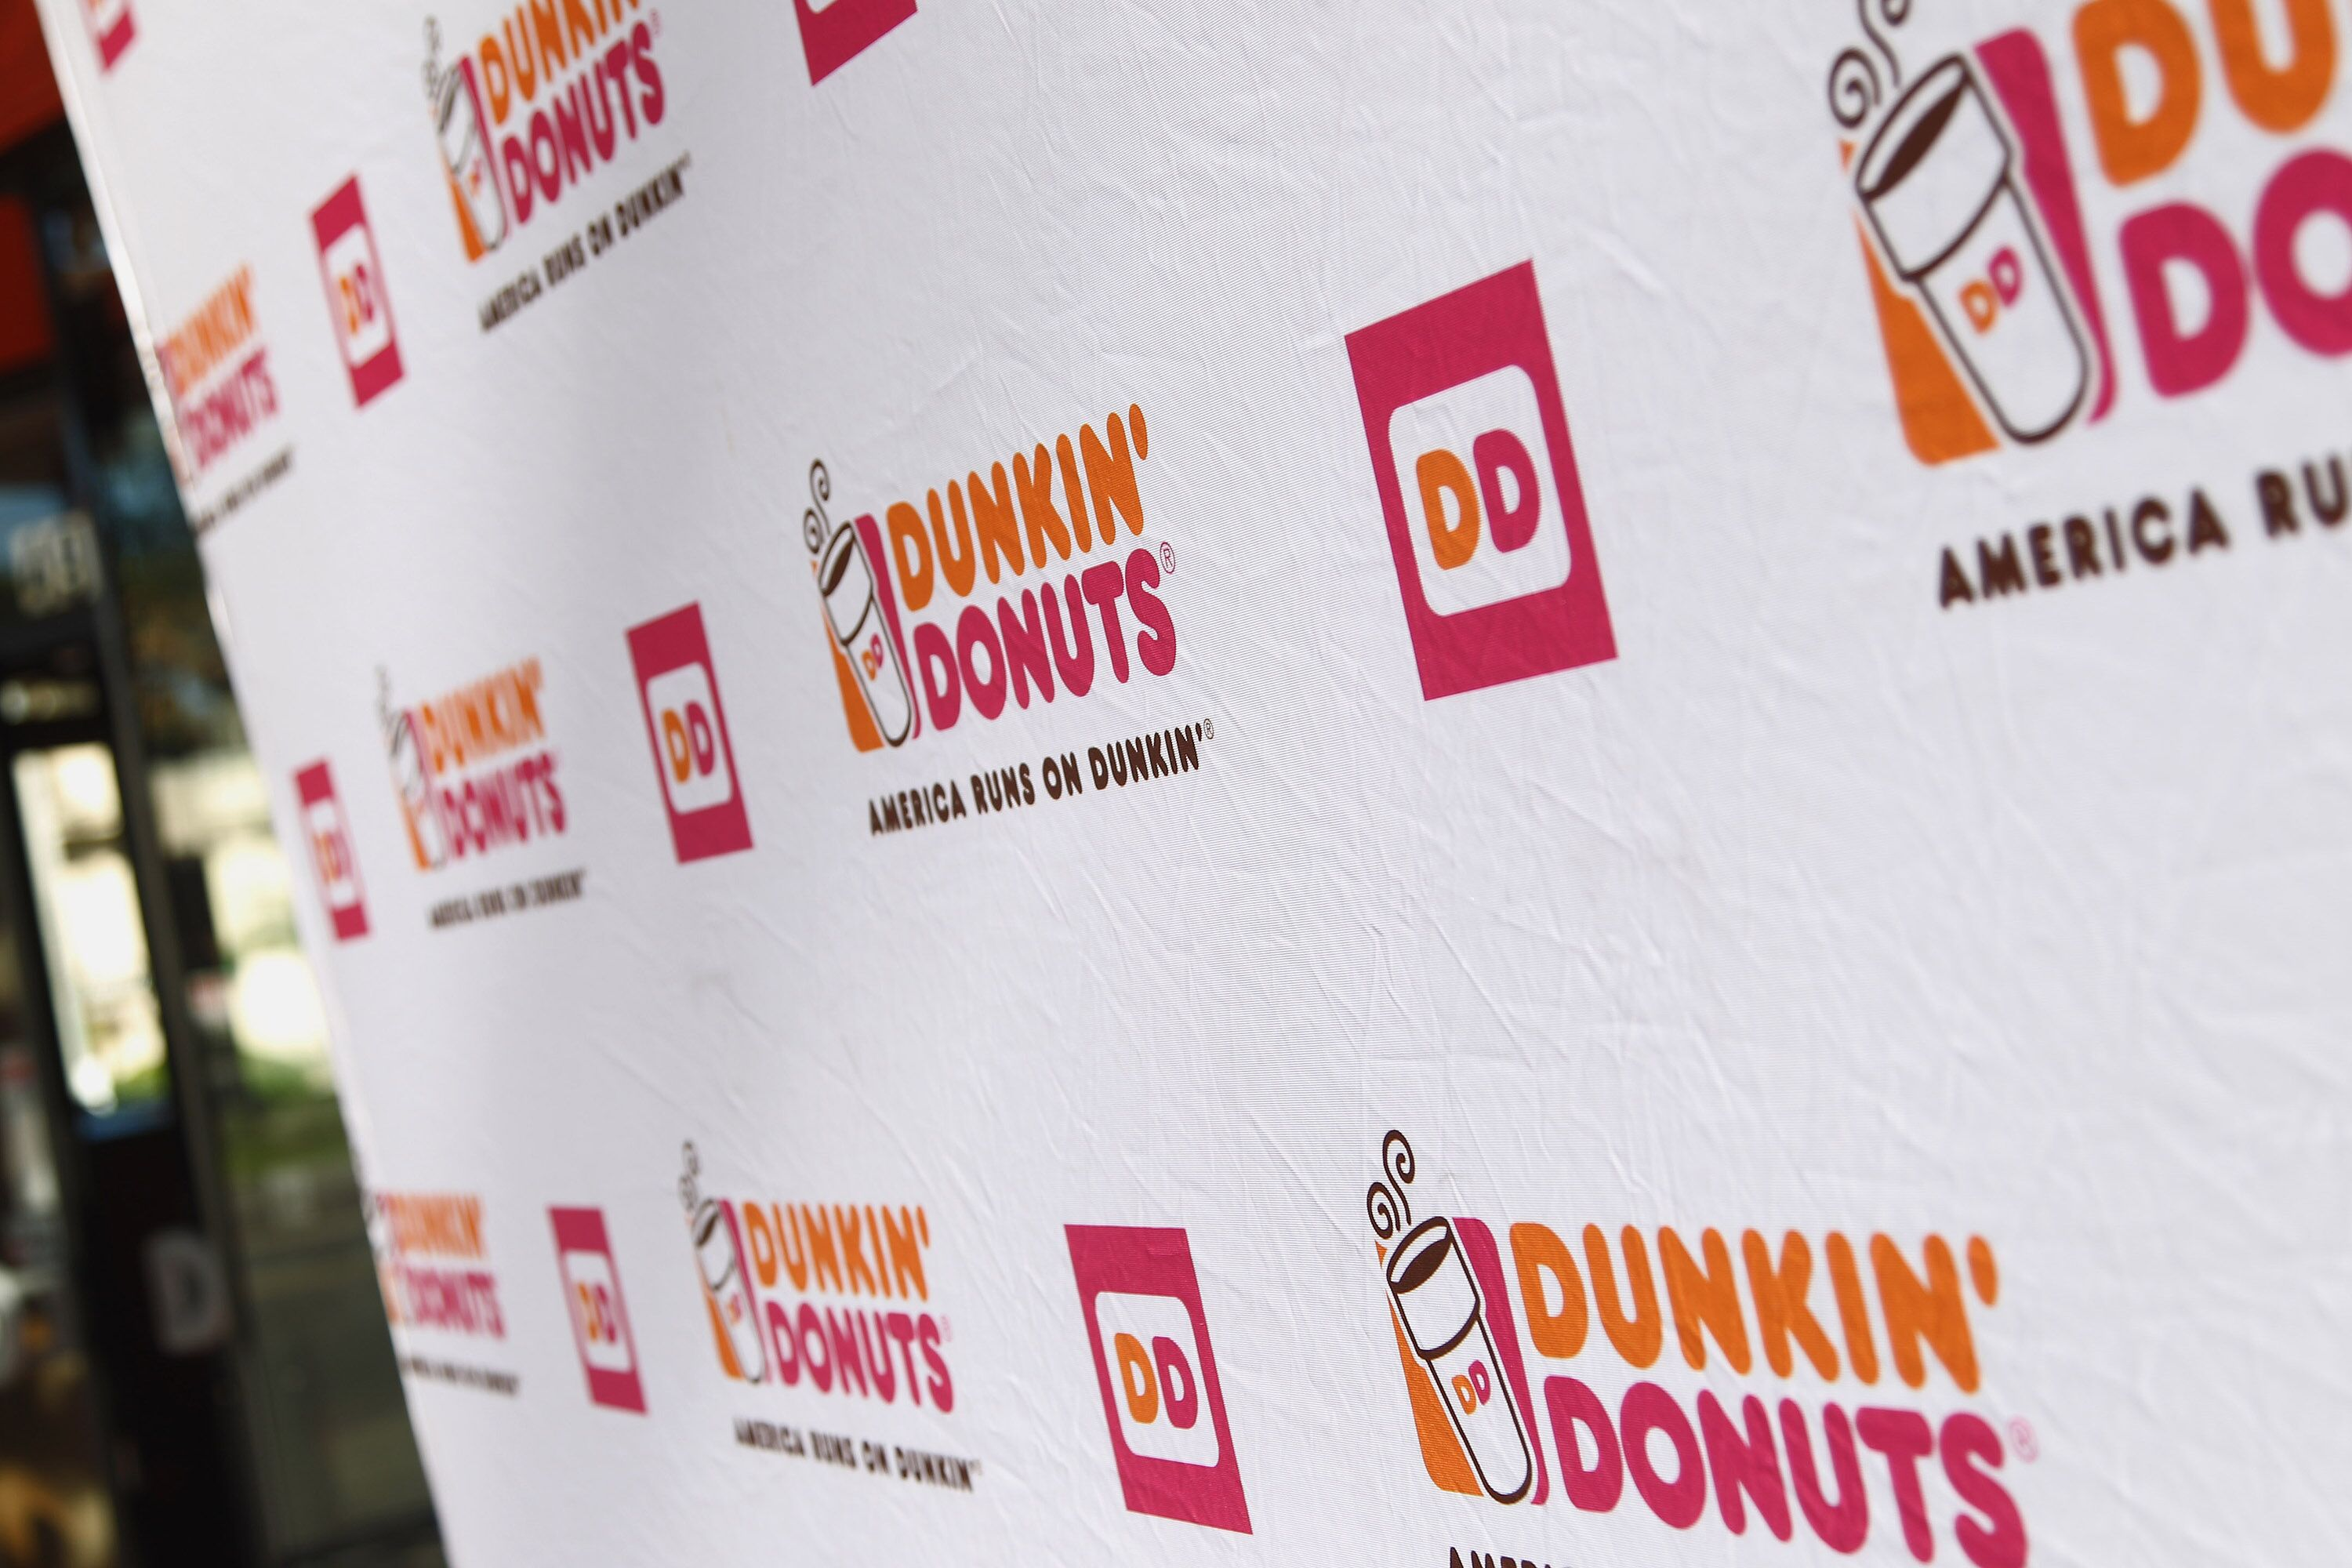 Is Dunkin\' Donuts open on 4th of July?